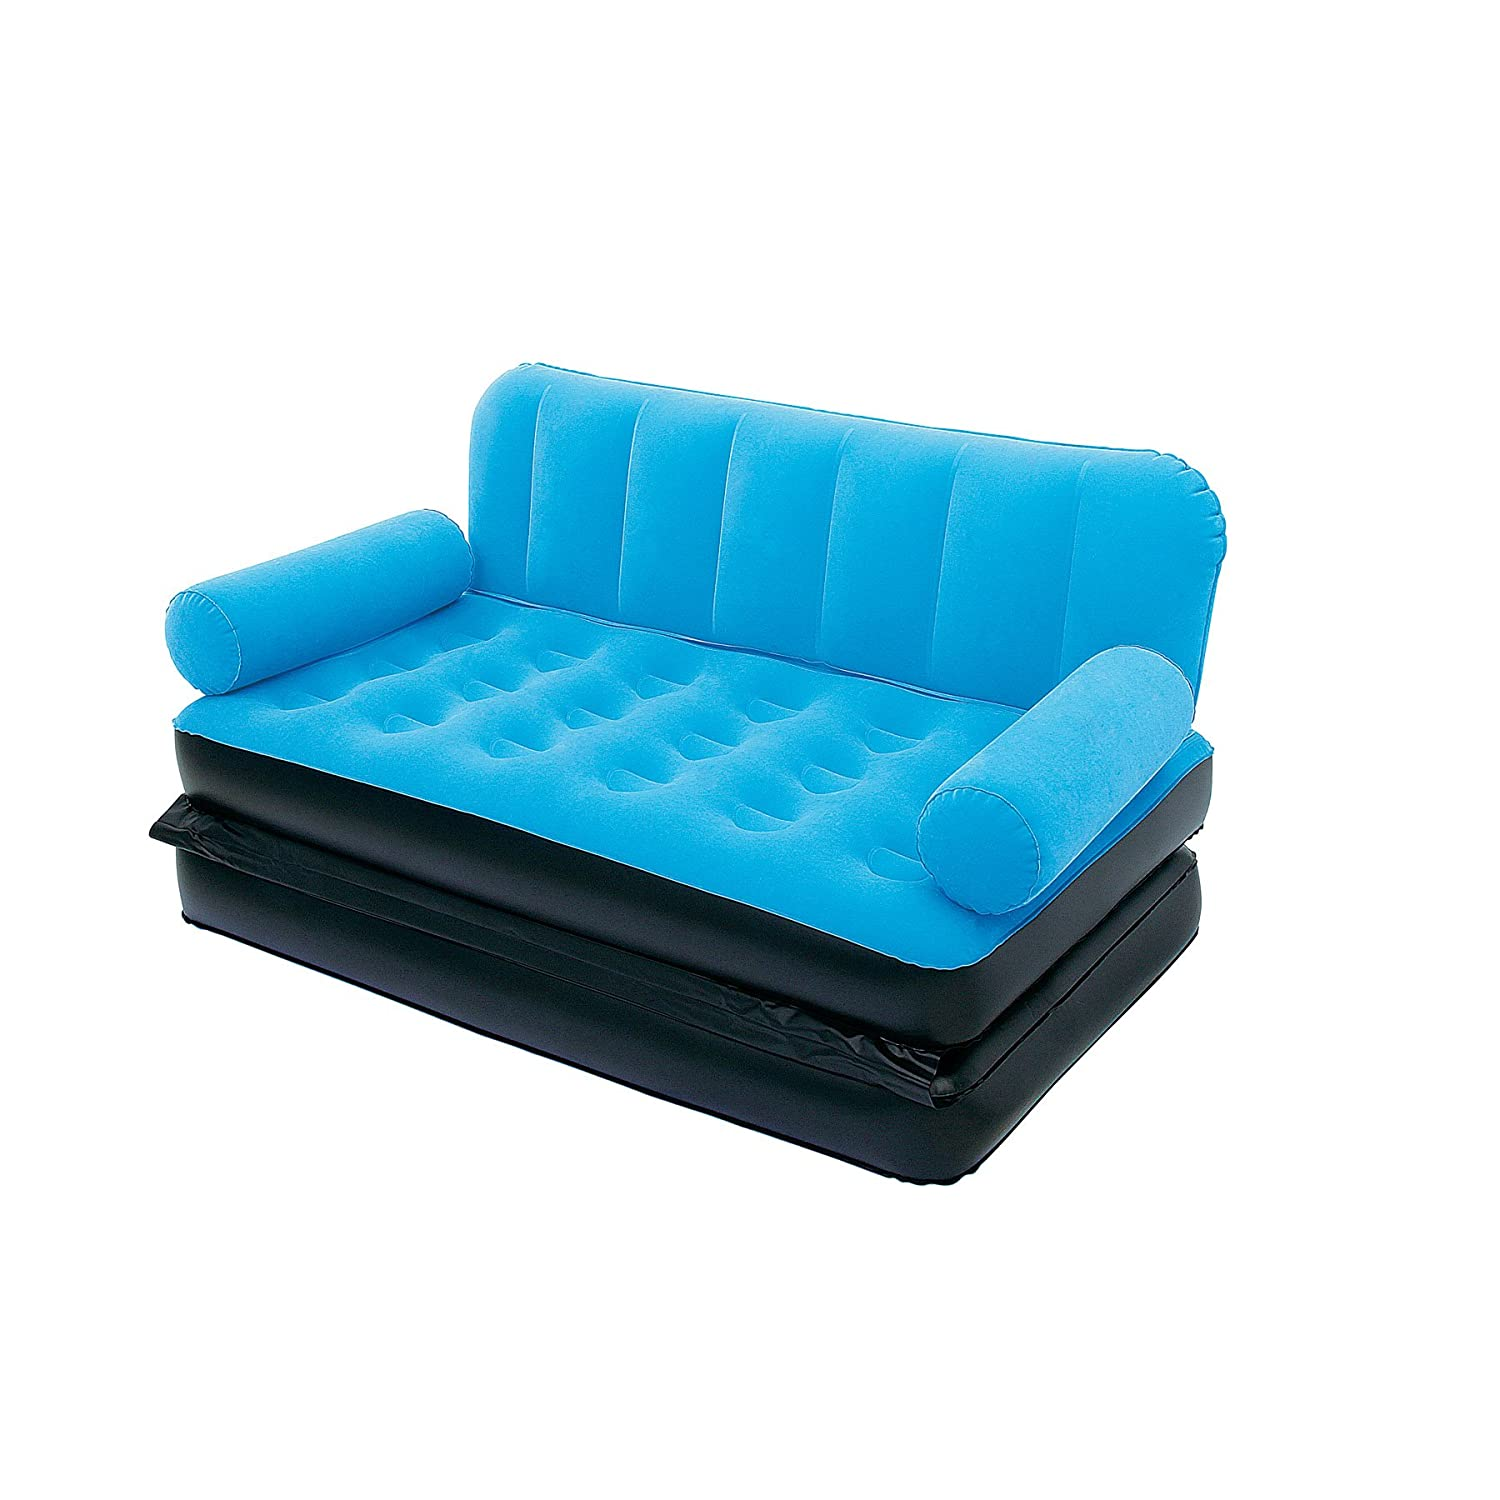 Karmax Bestway Three Seater Sofa cum Bed Blue Amazon